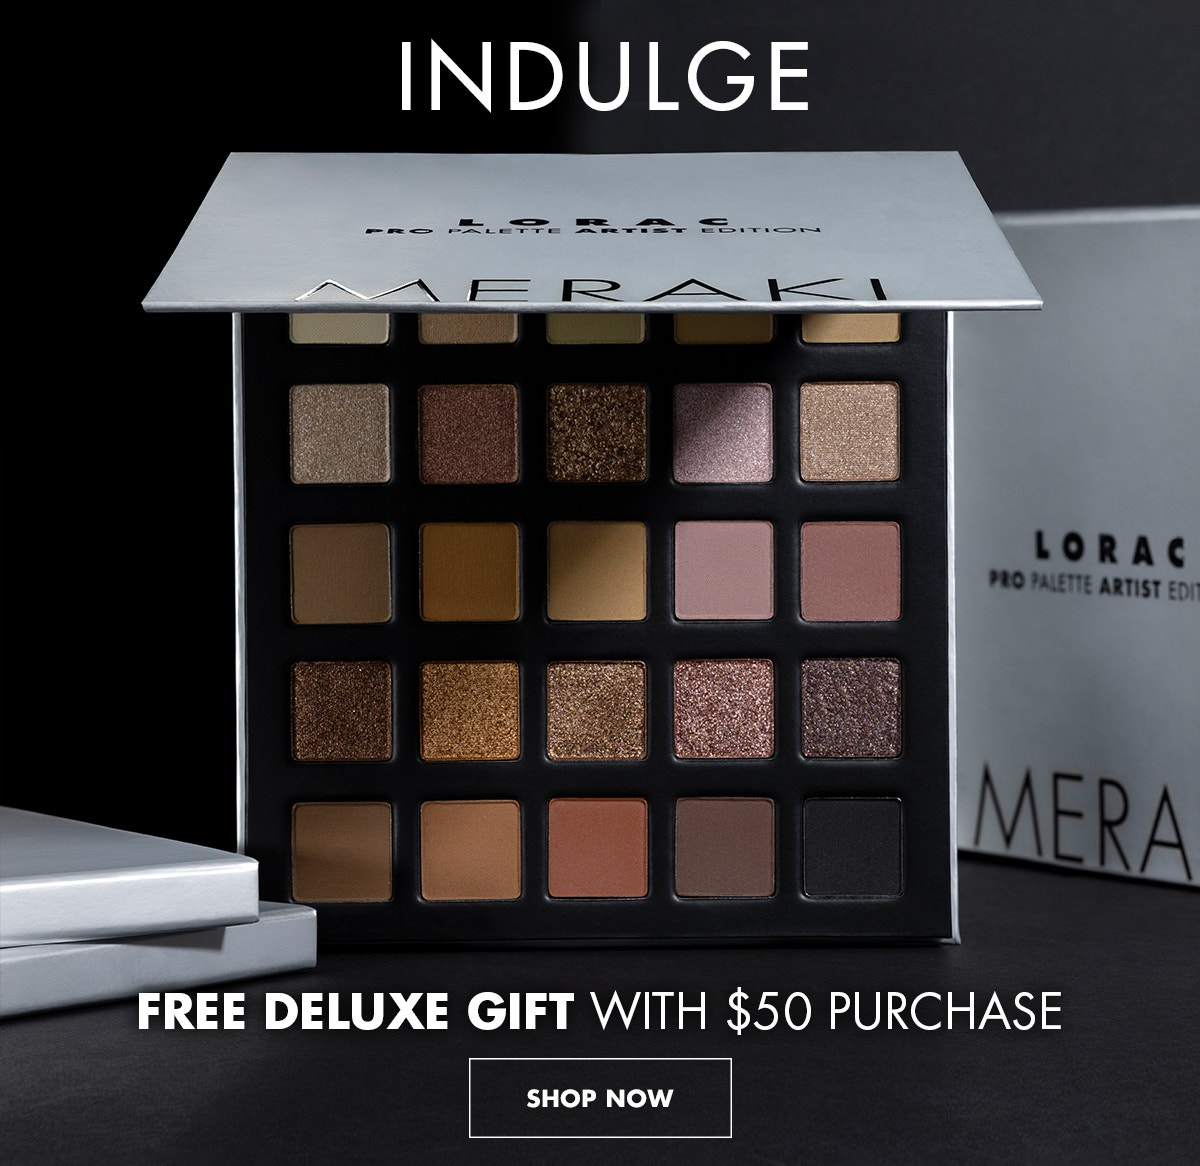 LORAC   INDULGE Free Deluxe Gift with $50 Purchase   SHOP NOW